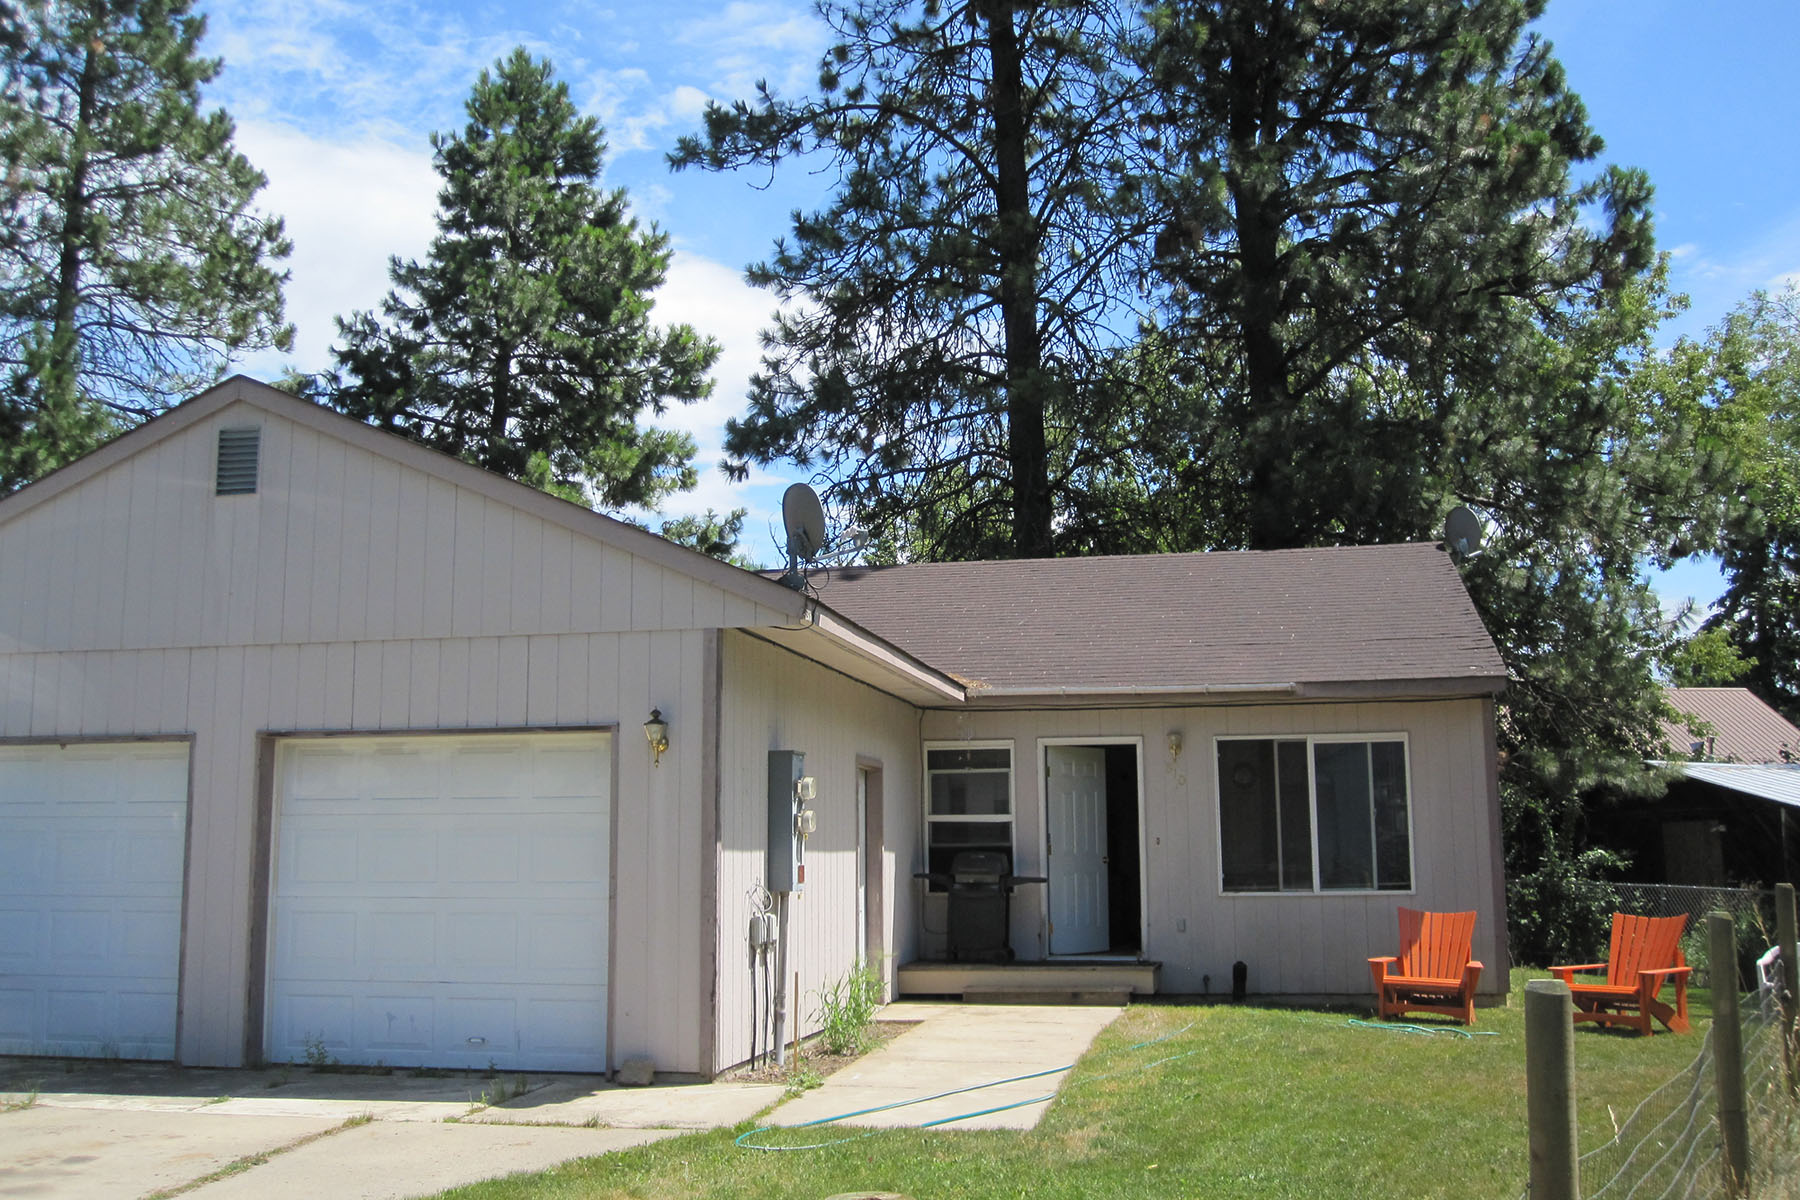 Duplex for Sale at Affordable duplex 810812 Shidaw CT Sandpoint, Idaho, 83864 United States